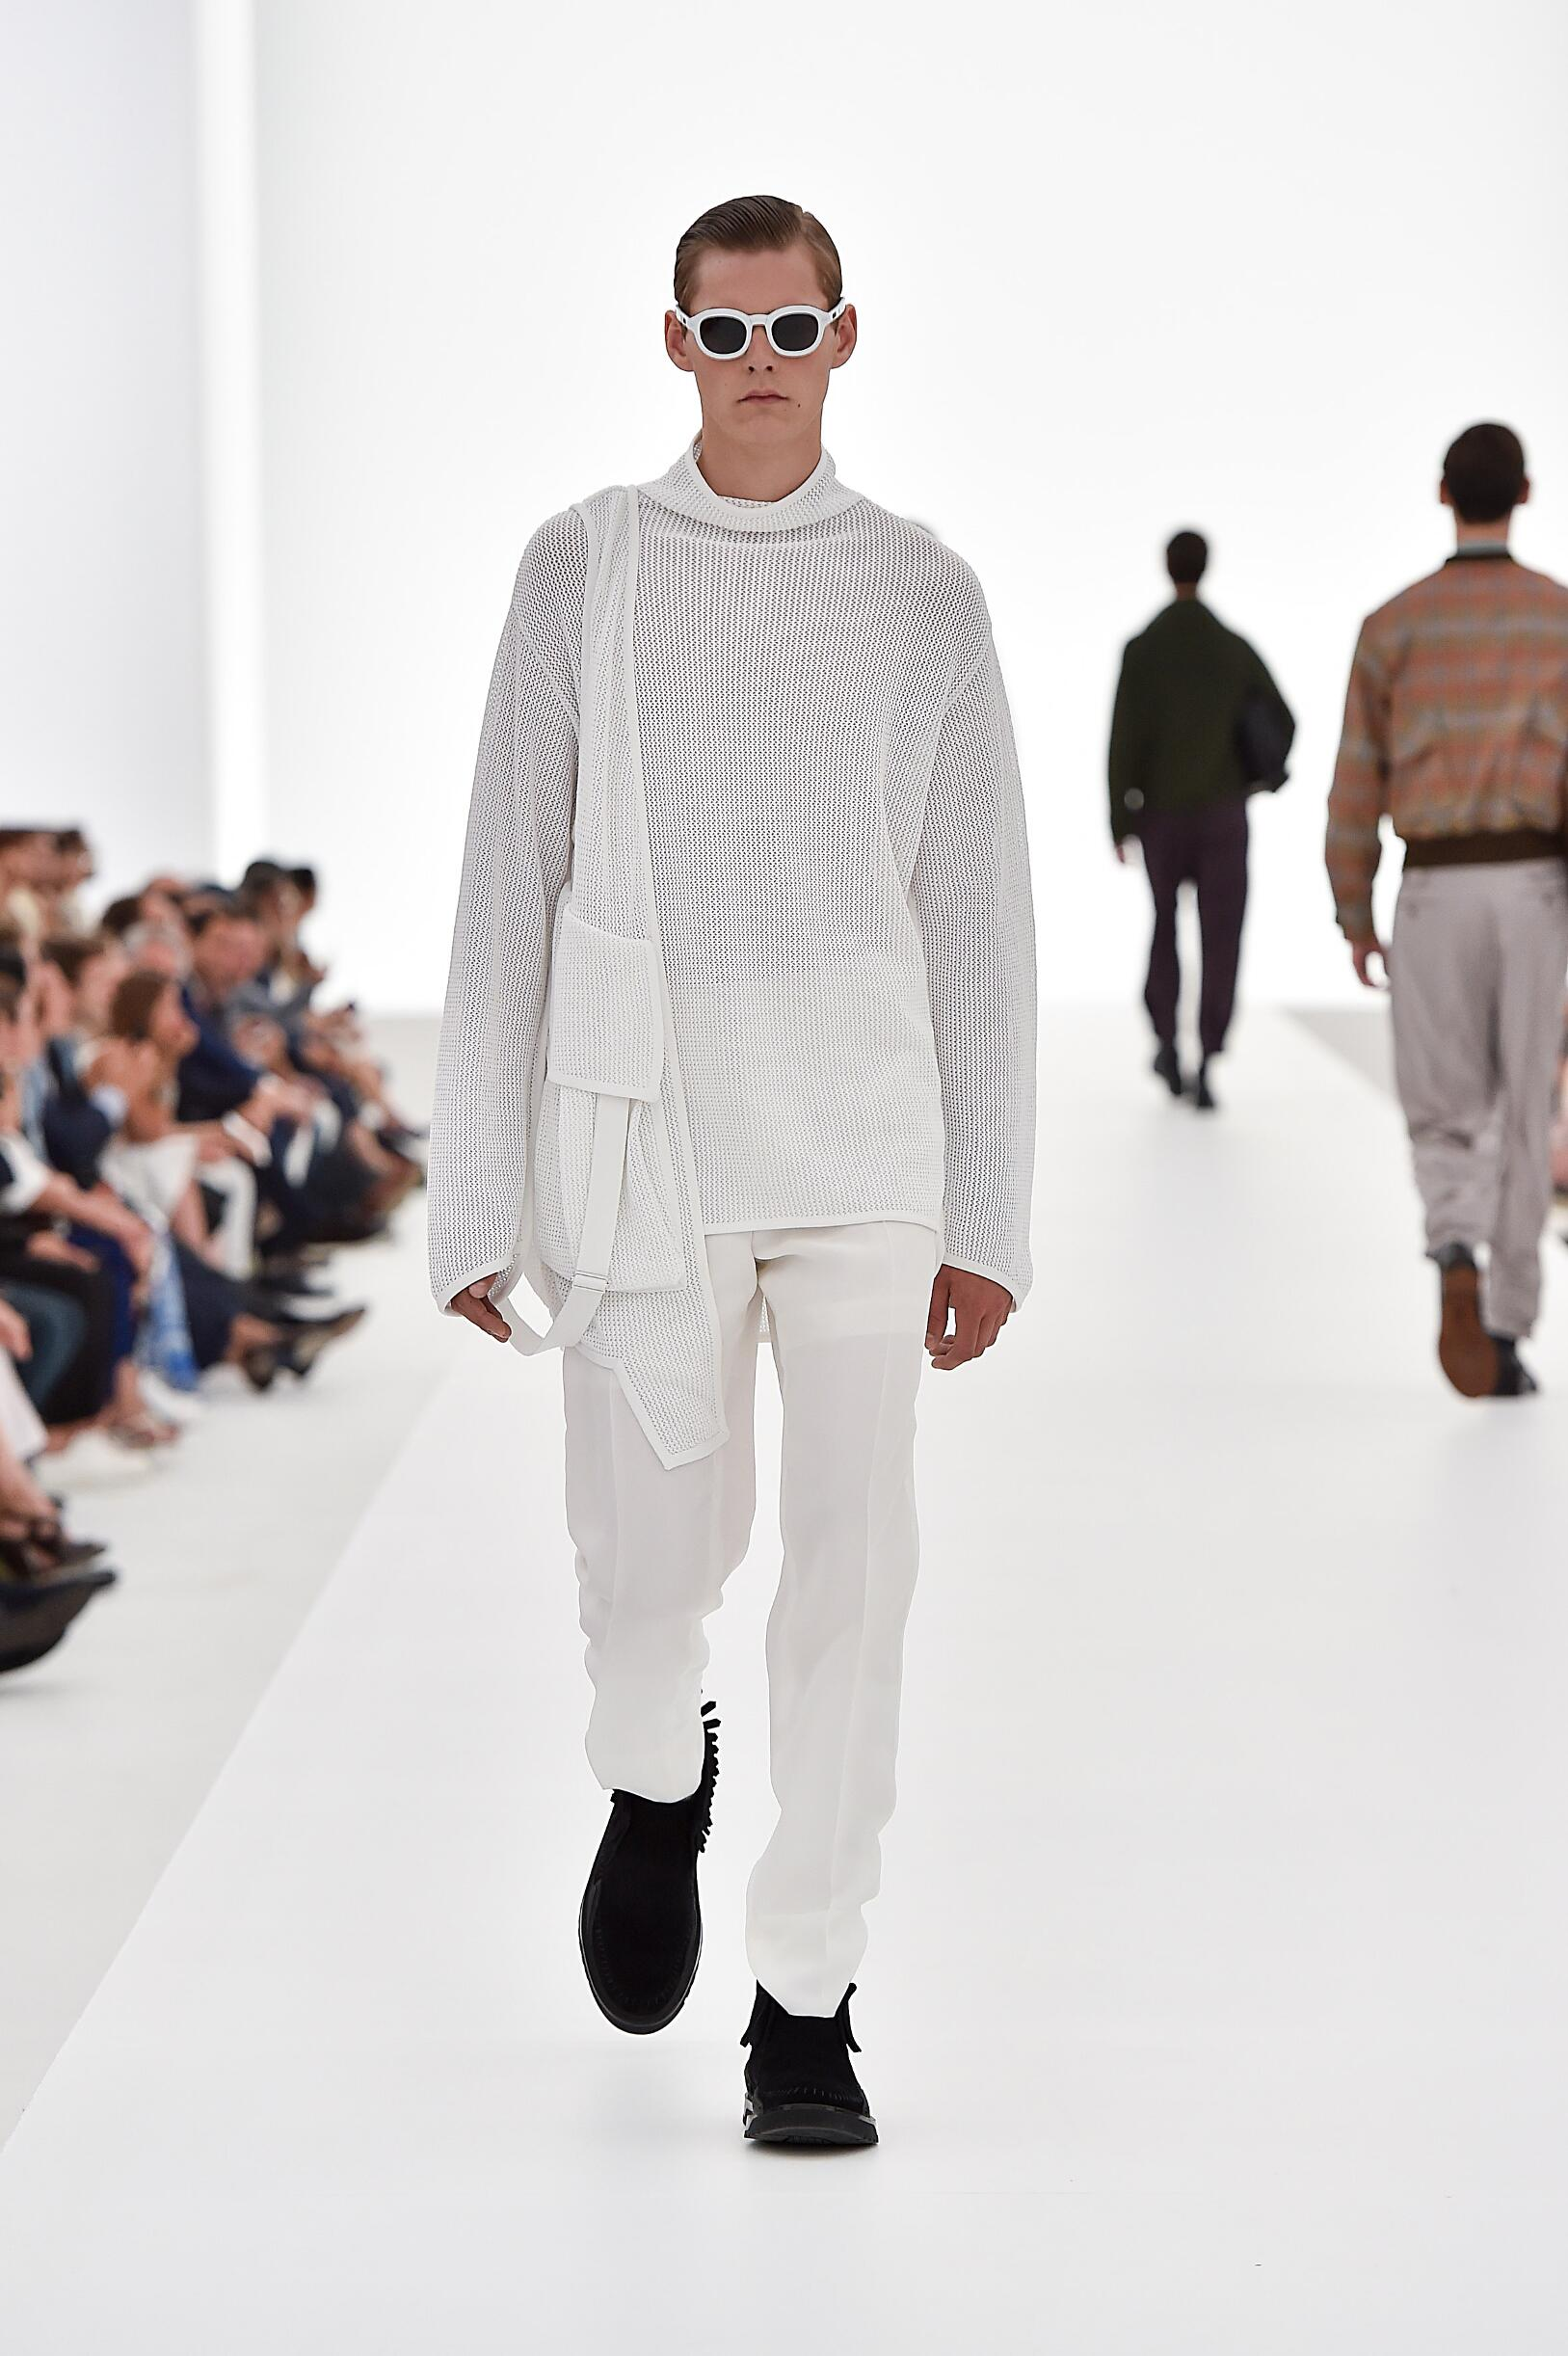 Catwalk Ermenegildo Zegna Couture Spring Summer 2016 Men's Collection Milan Fashion Week